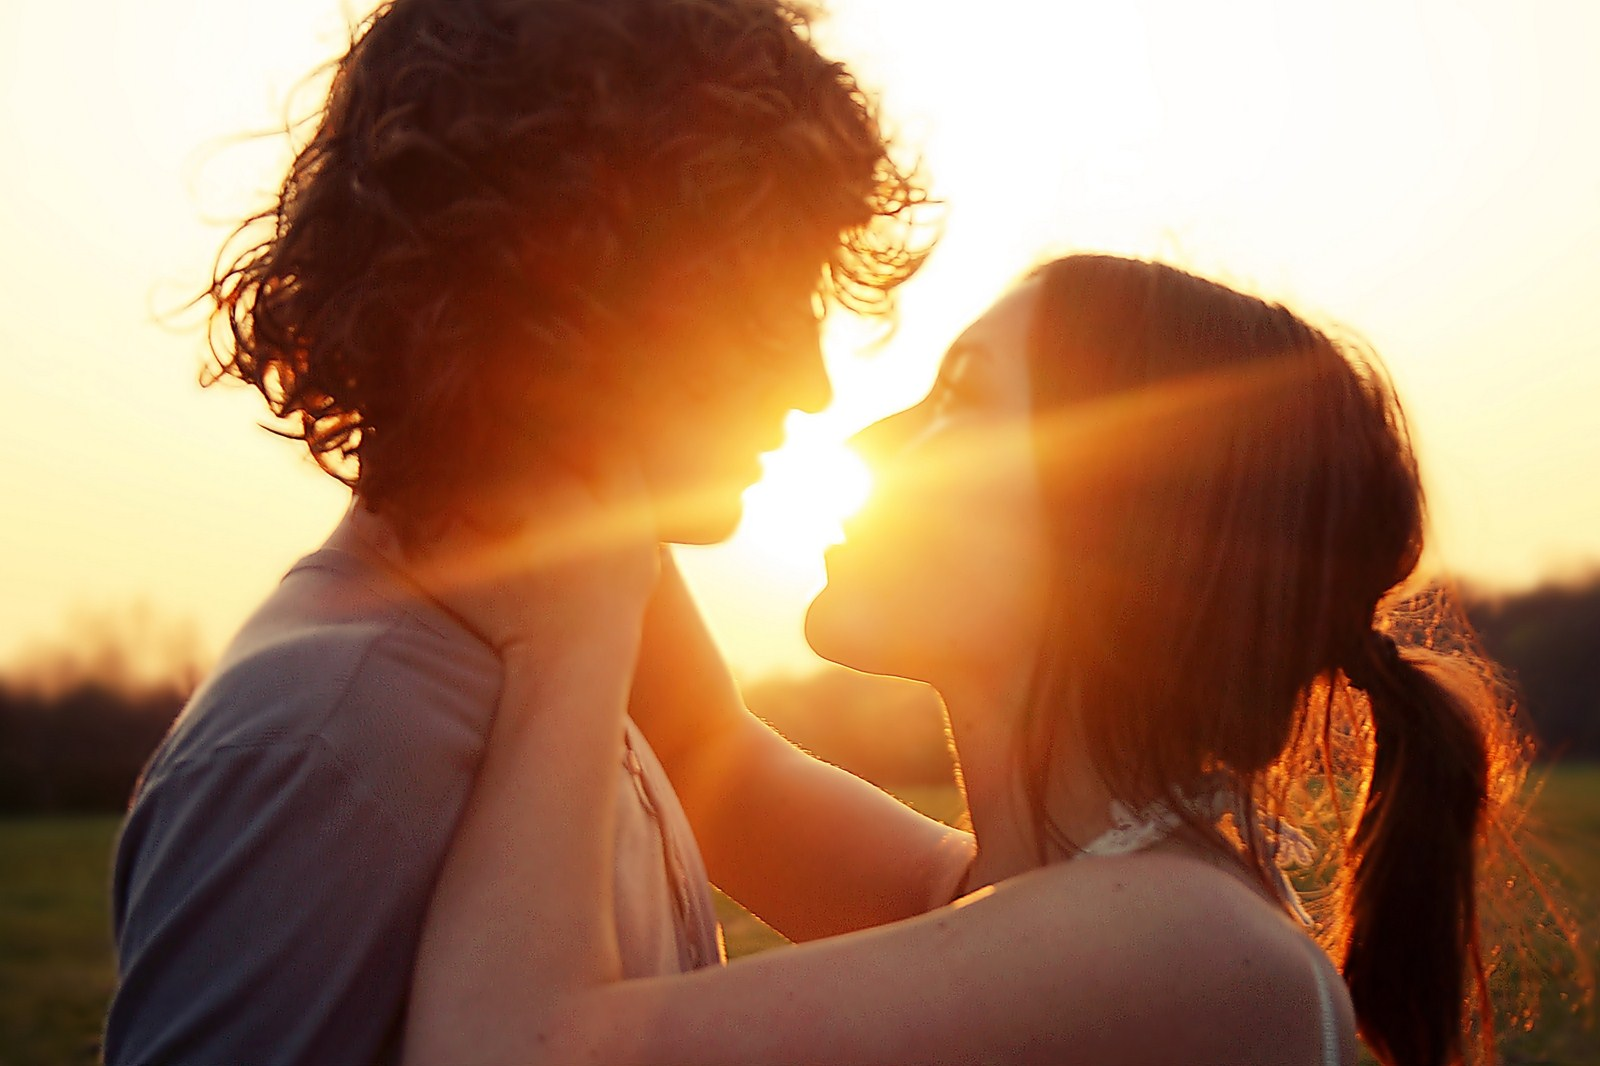 Sun Summer Love couple Magic Moment Mood Romance Photo HD ...